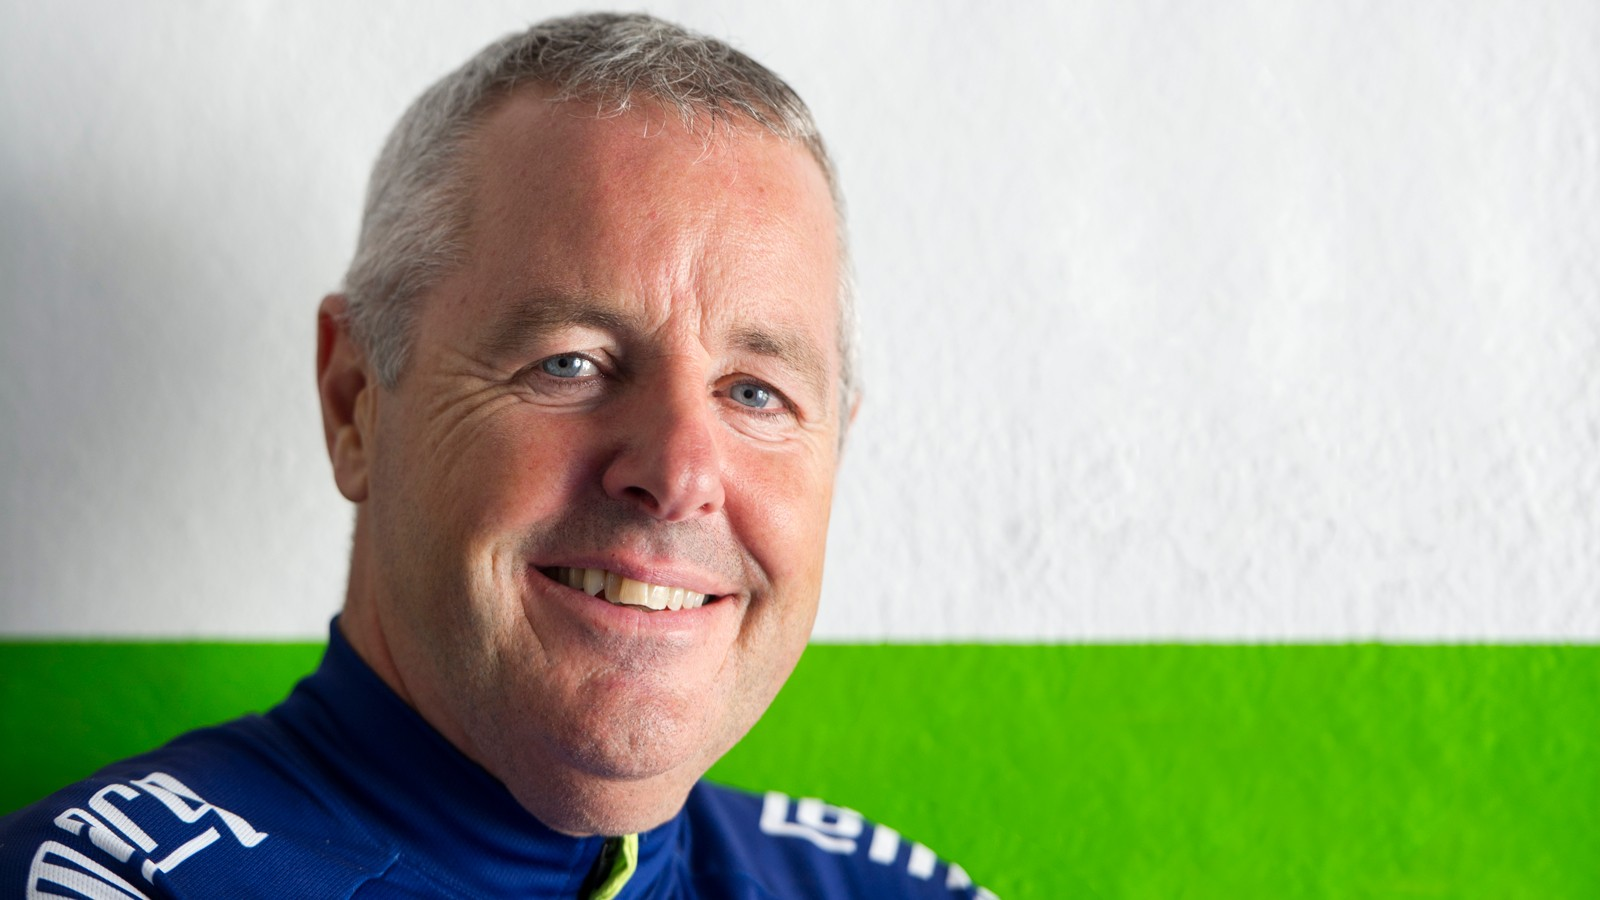 Stephen Roche won the Tour de France, Giro d'Italia and world championships in 1987